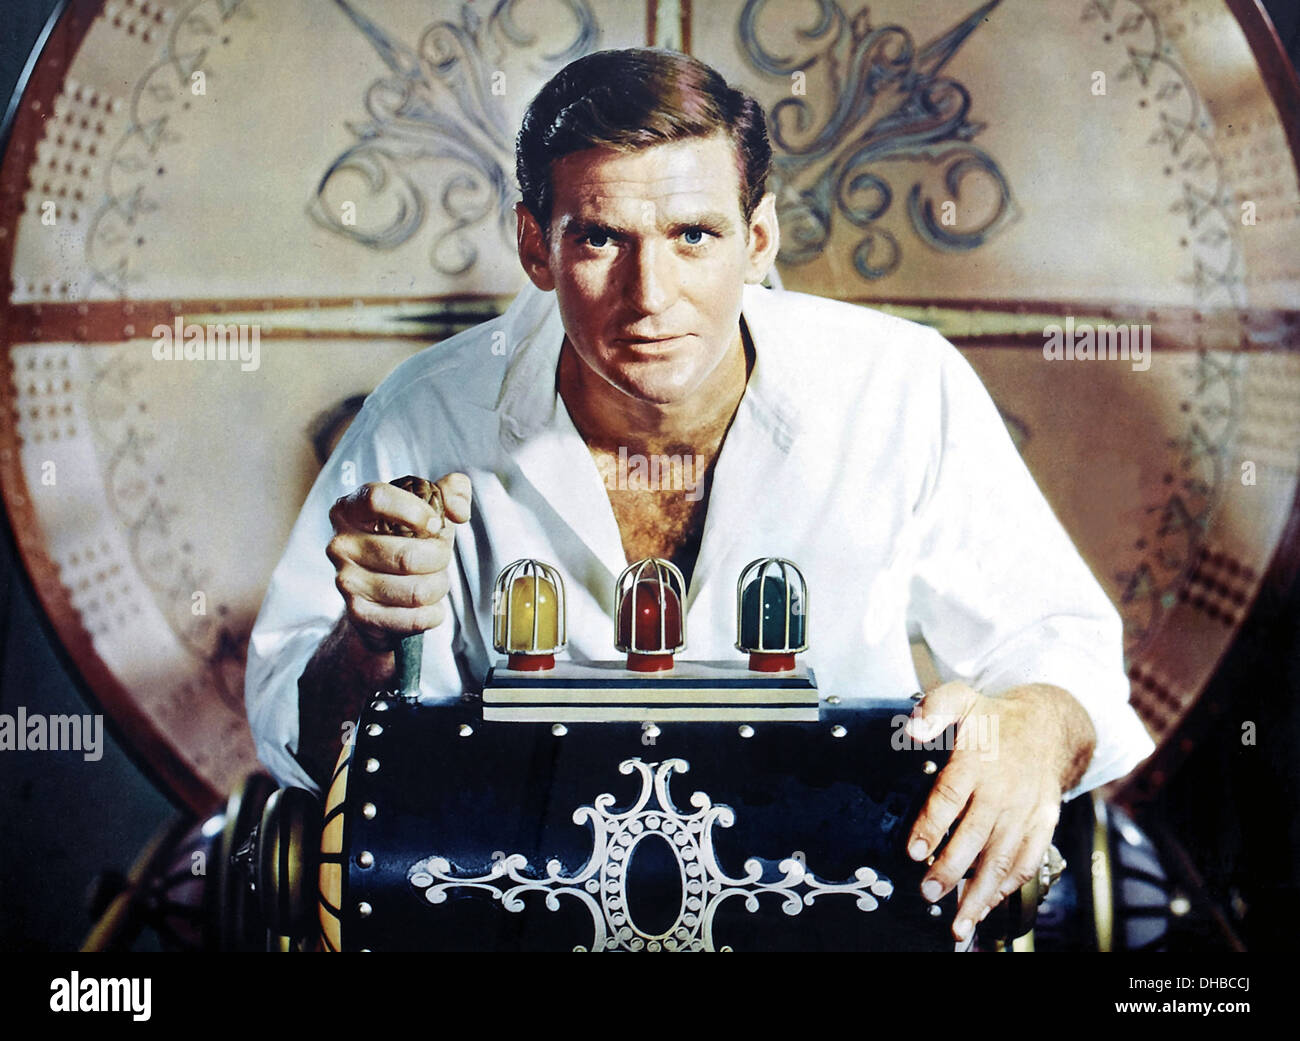 THE TIME MACHINE 1960 MGM film with Rod Taylor based on H.G.Wells's 1895 sci-fi novel - Stock Image